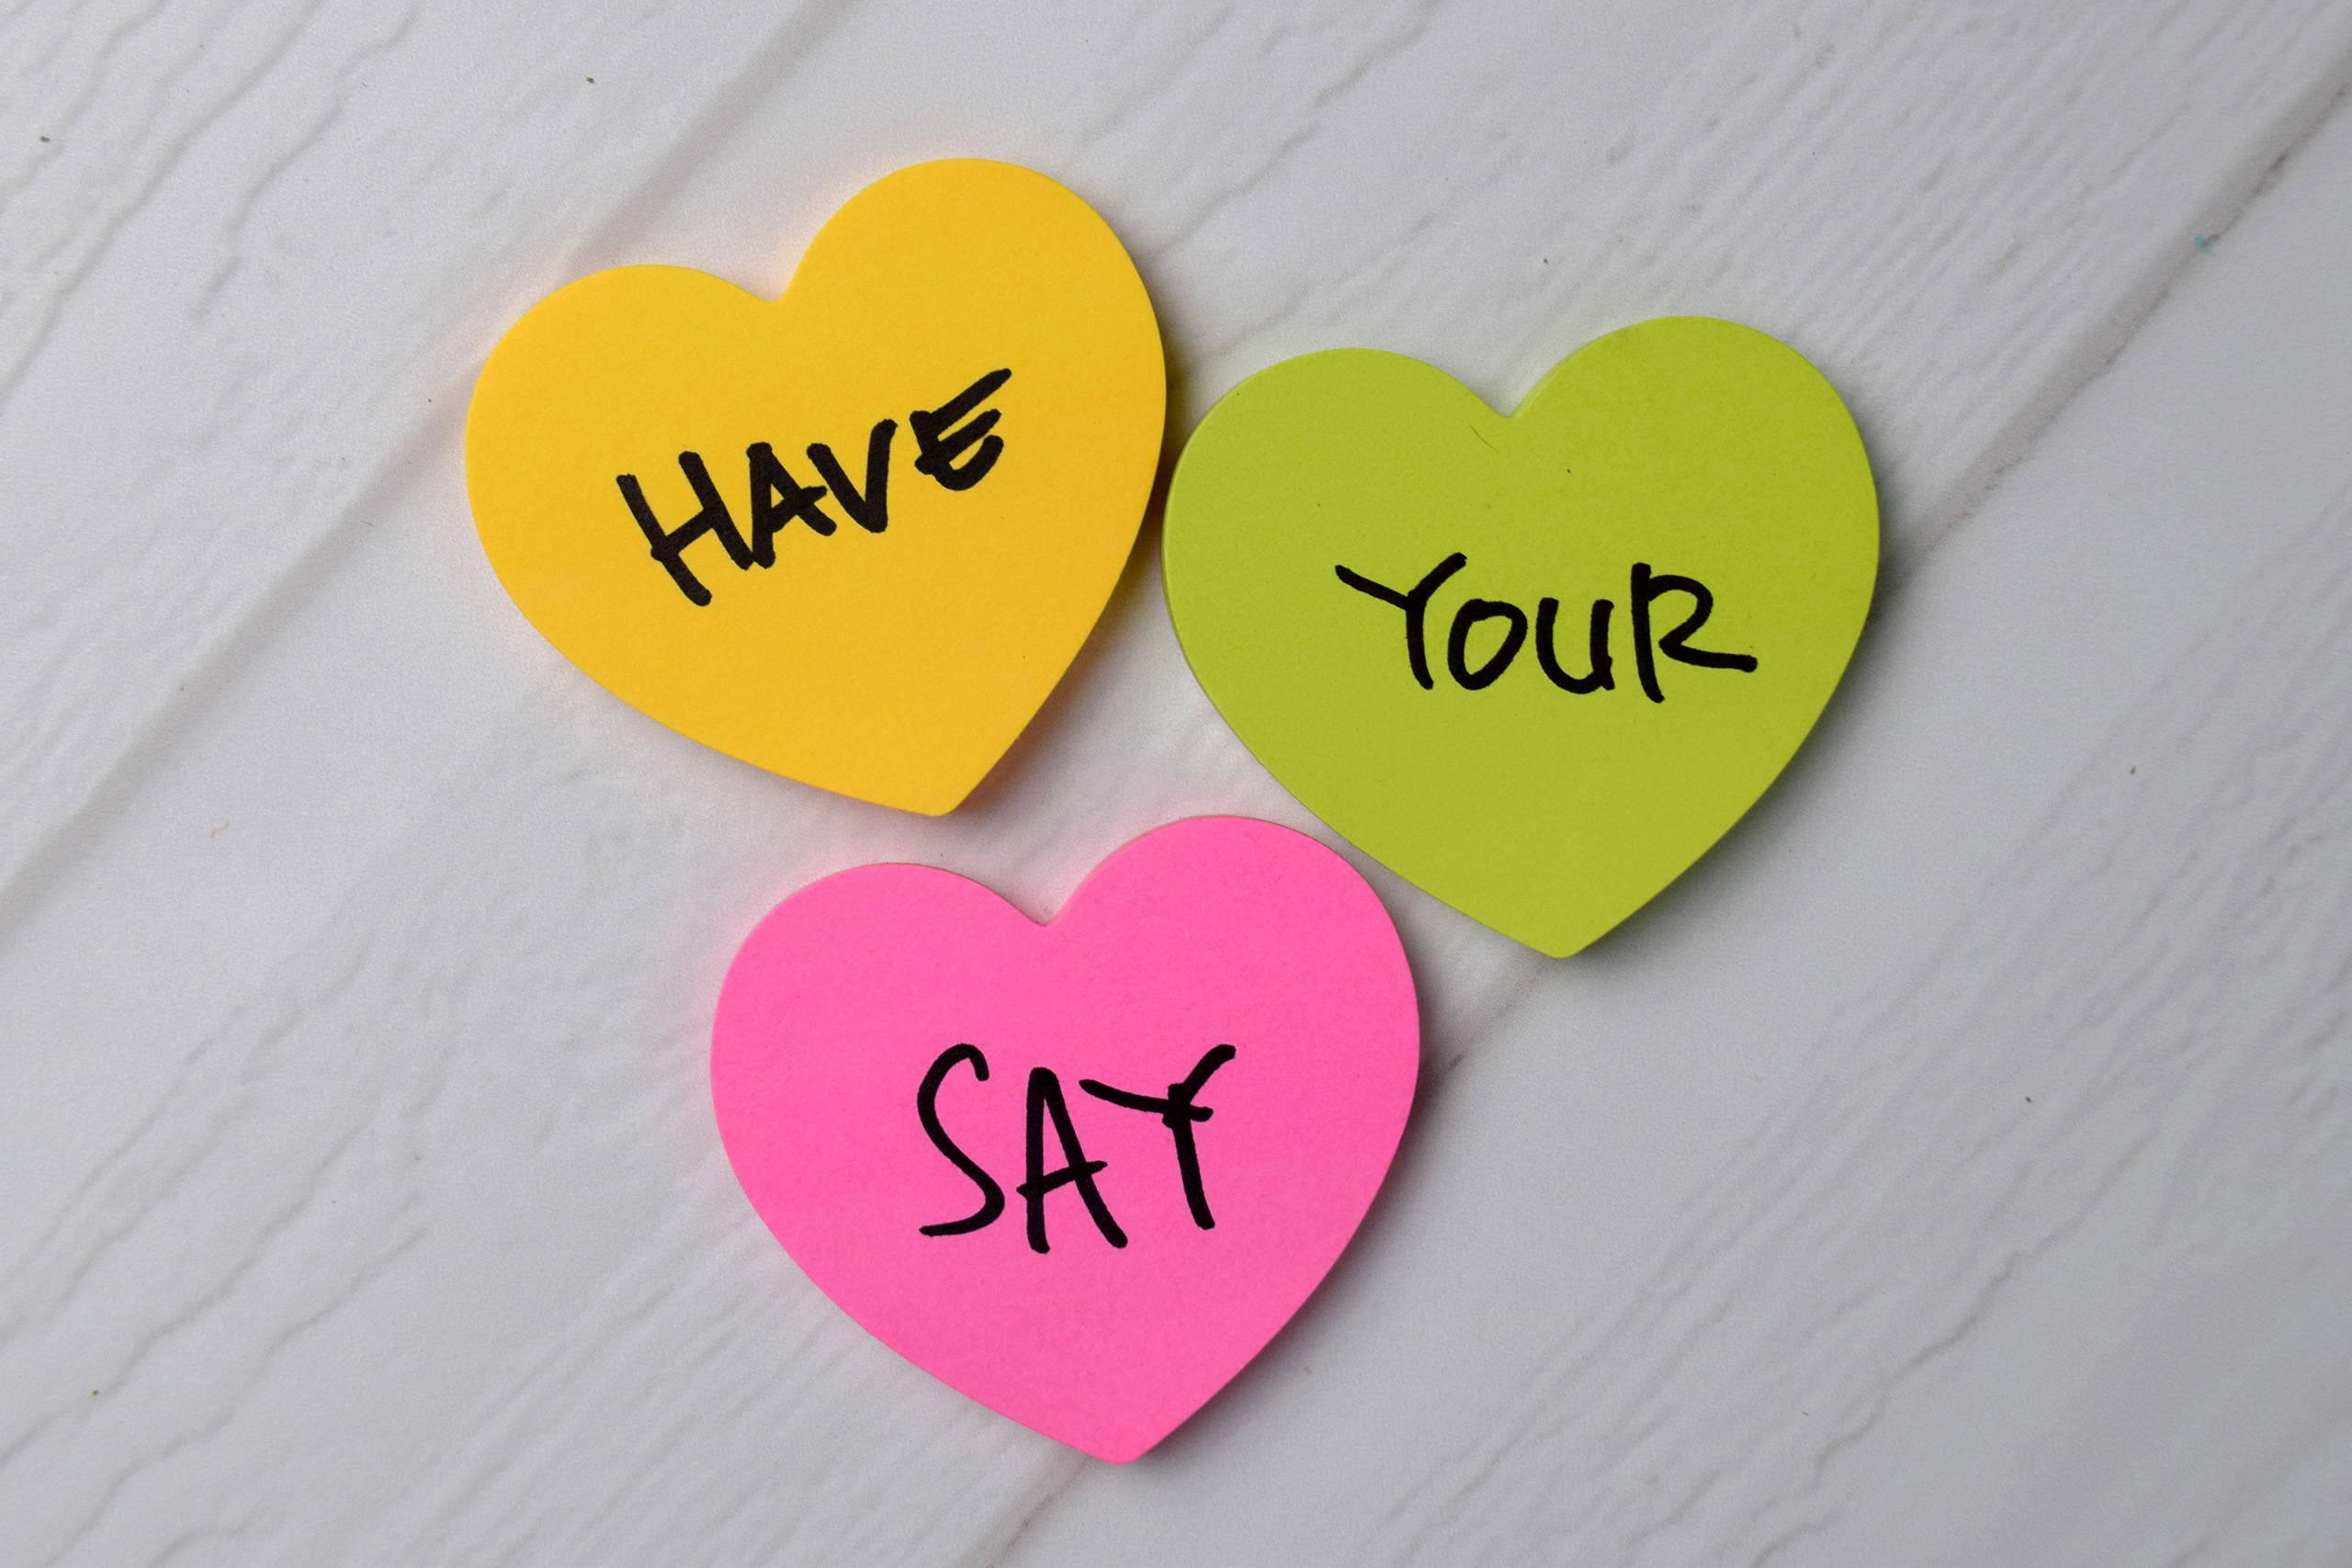 Have Your Say text on sticky notes with office desk.